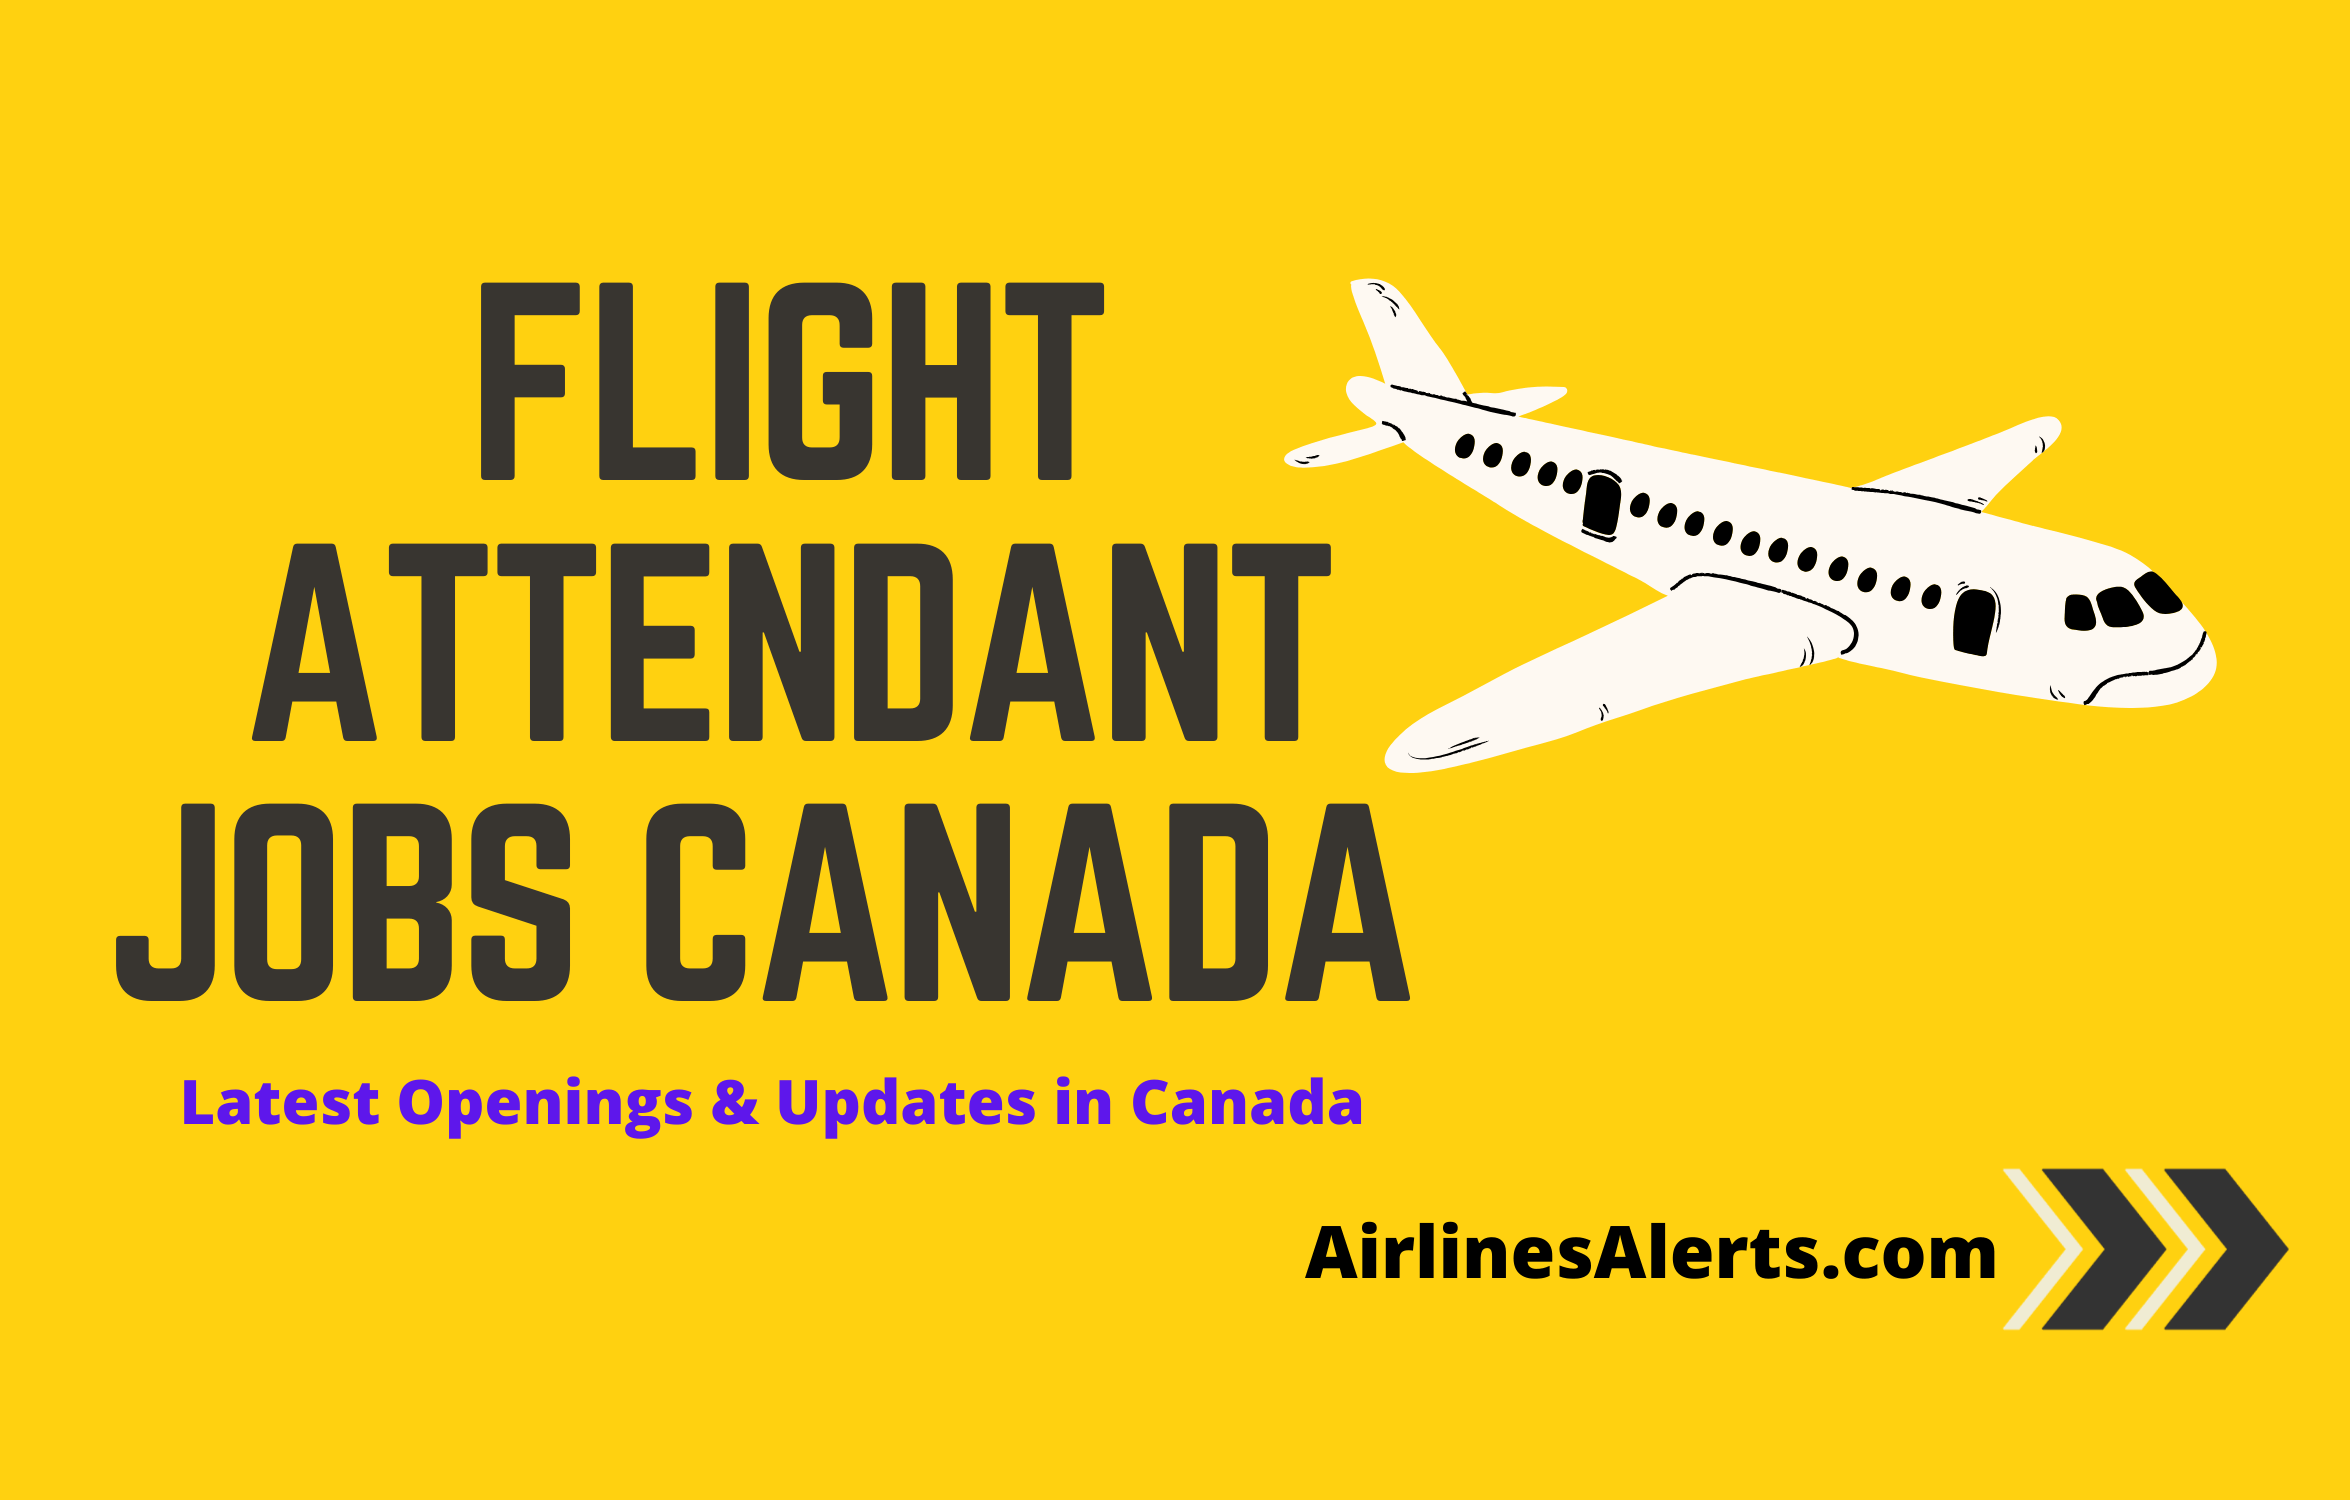 Flight Attendant Jobs Canada 2020 - Latest Flight Attendant/Cabin Crew Jobs Openings & Hiring